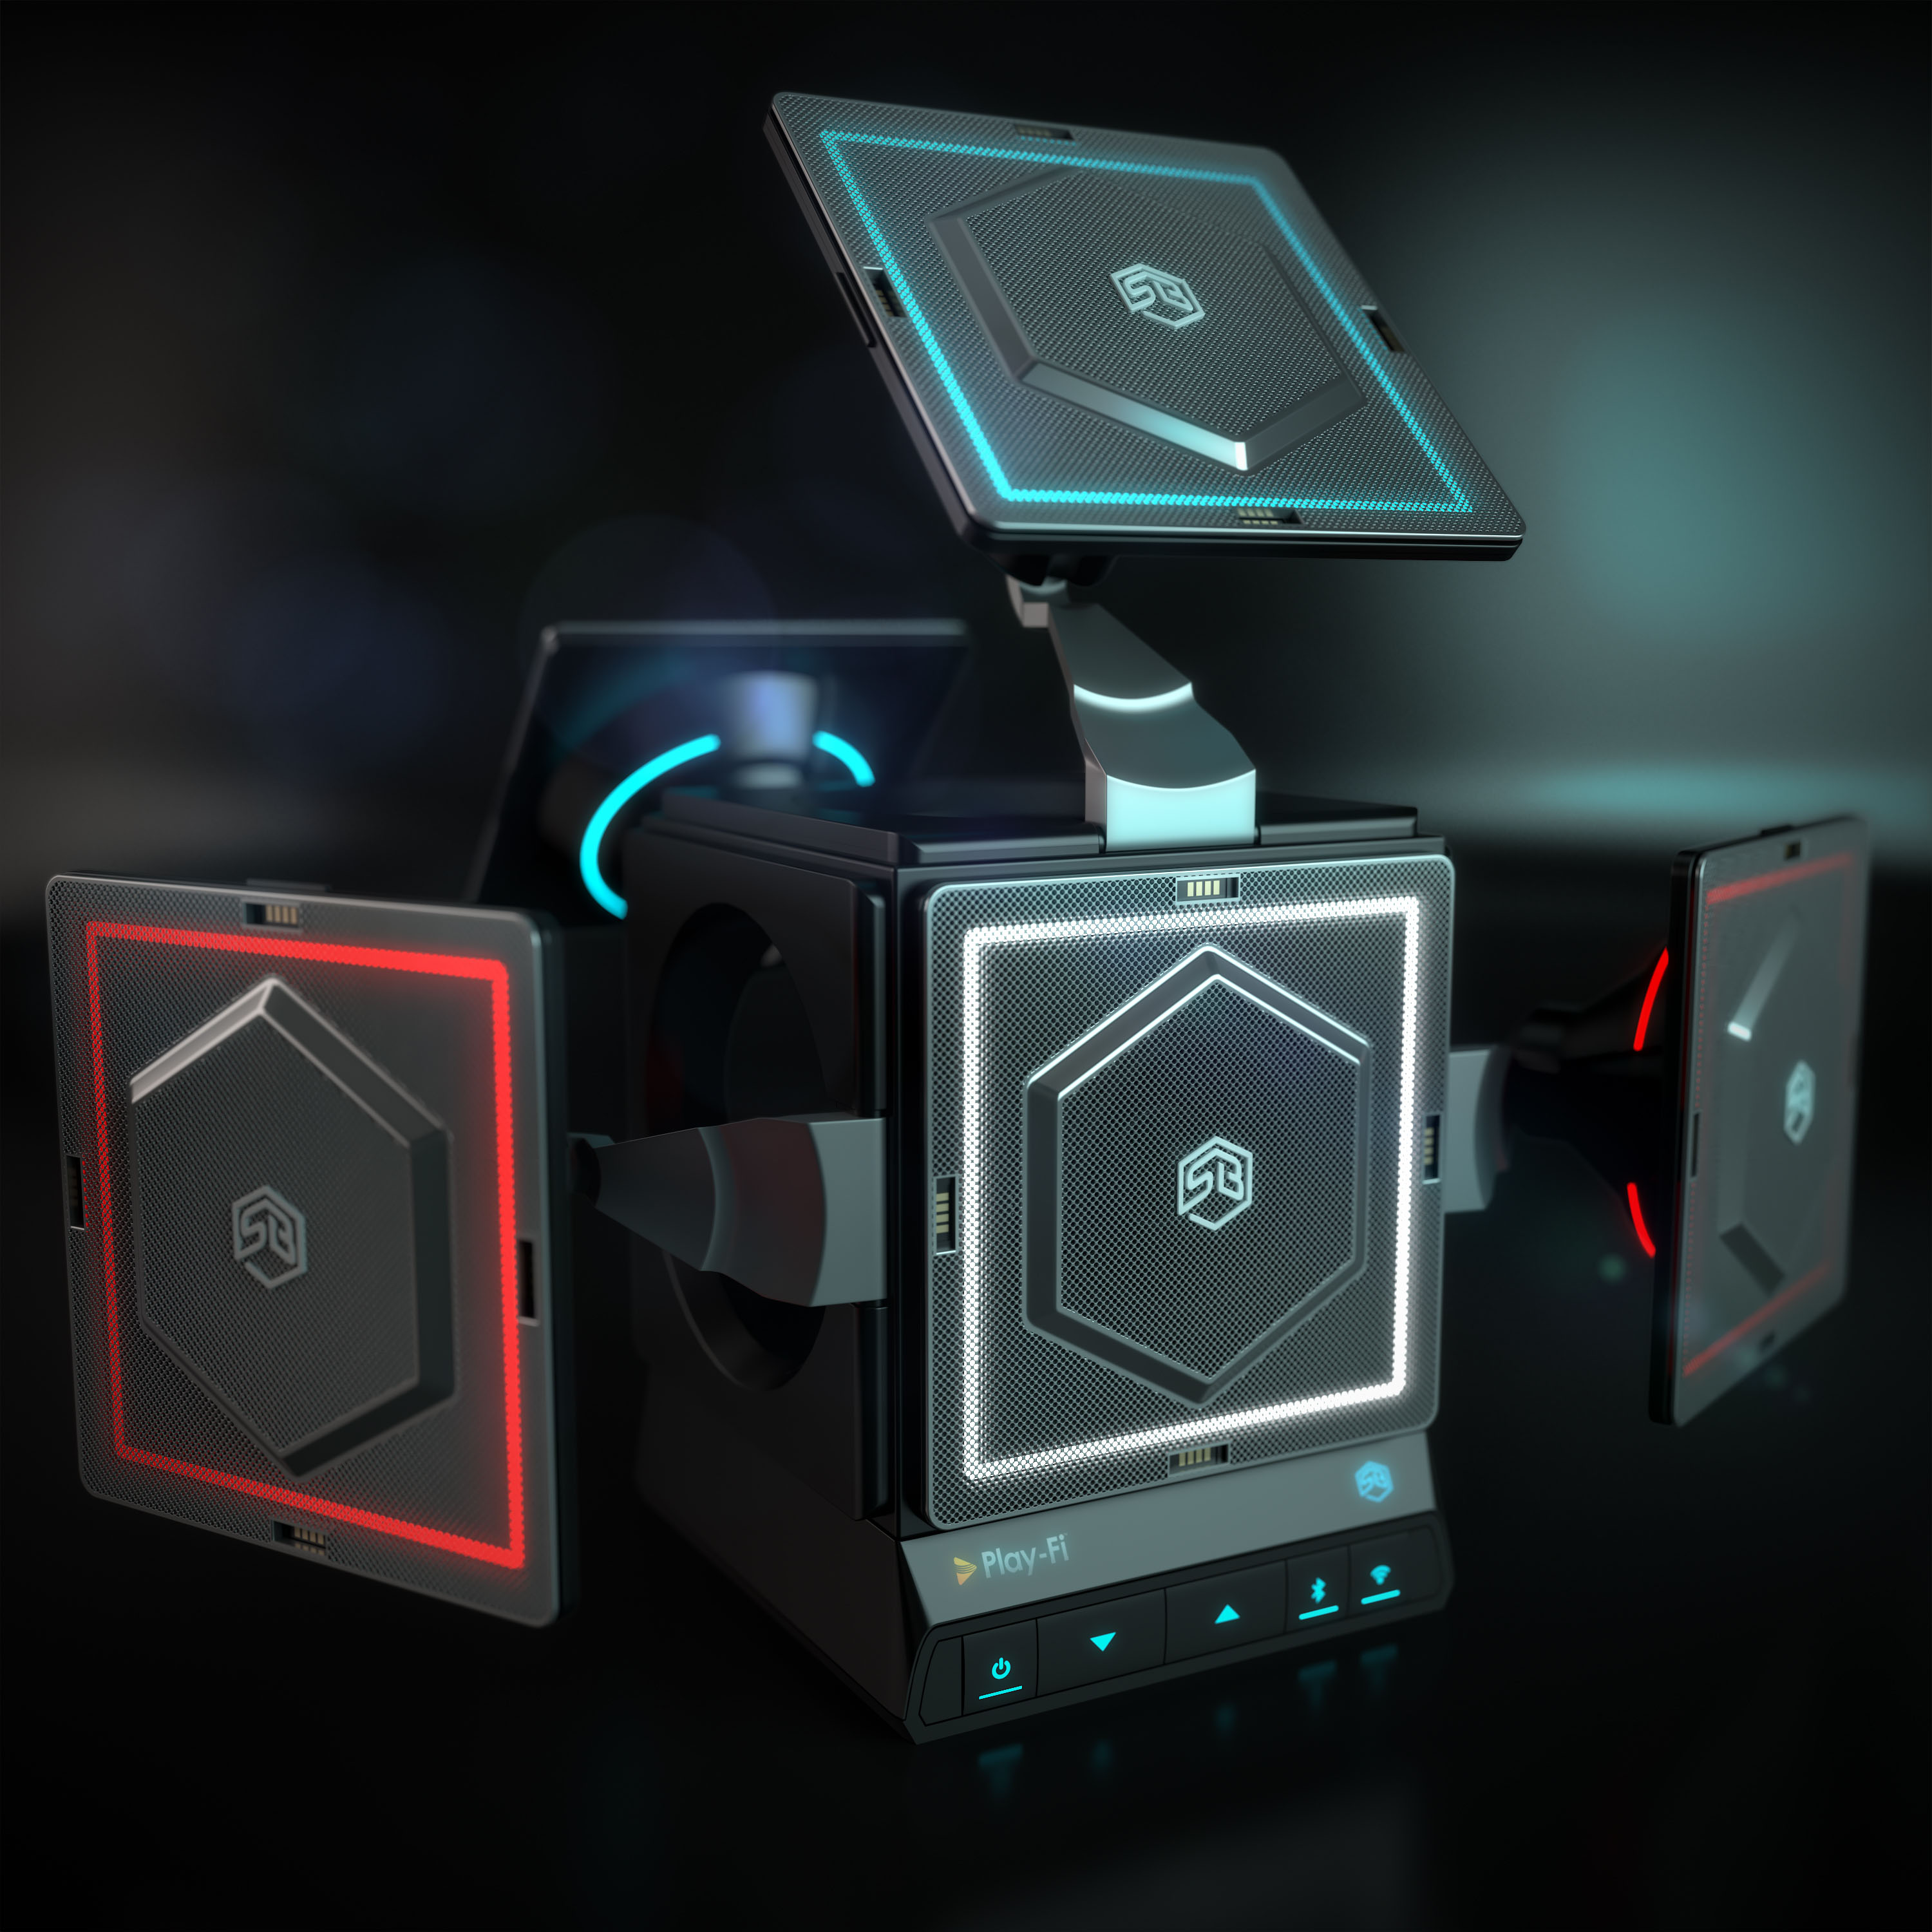 Sonic Blocks modular speaker system 3D rendering on dark background with lens glare effects